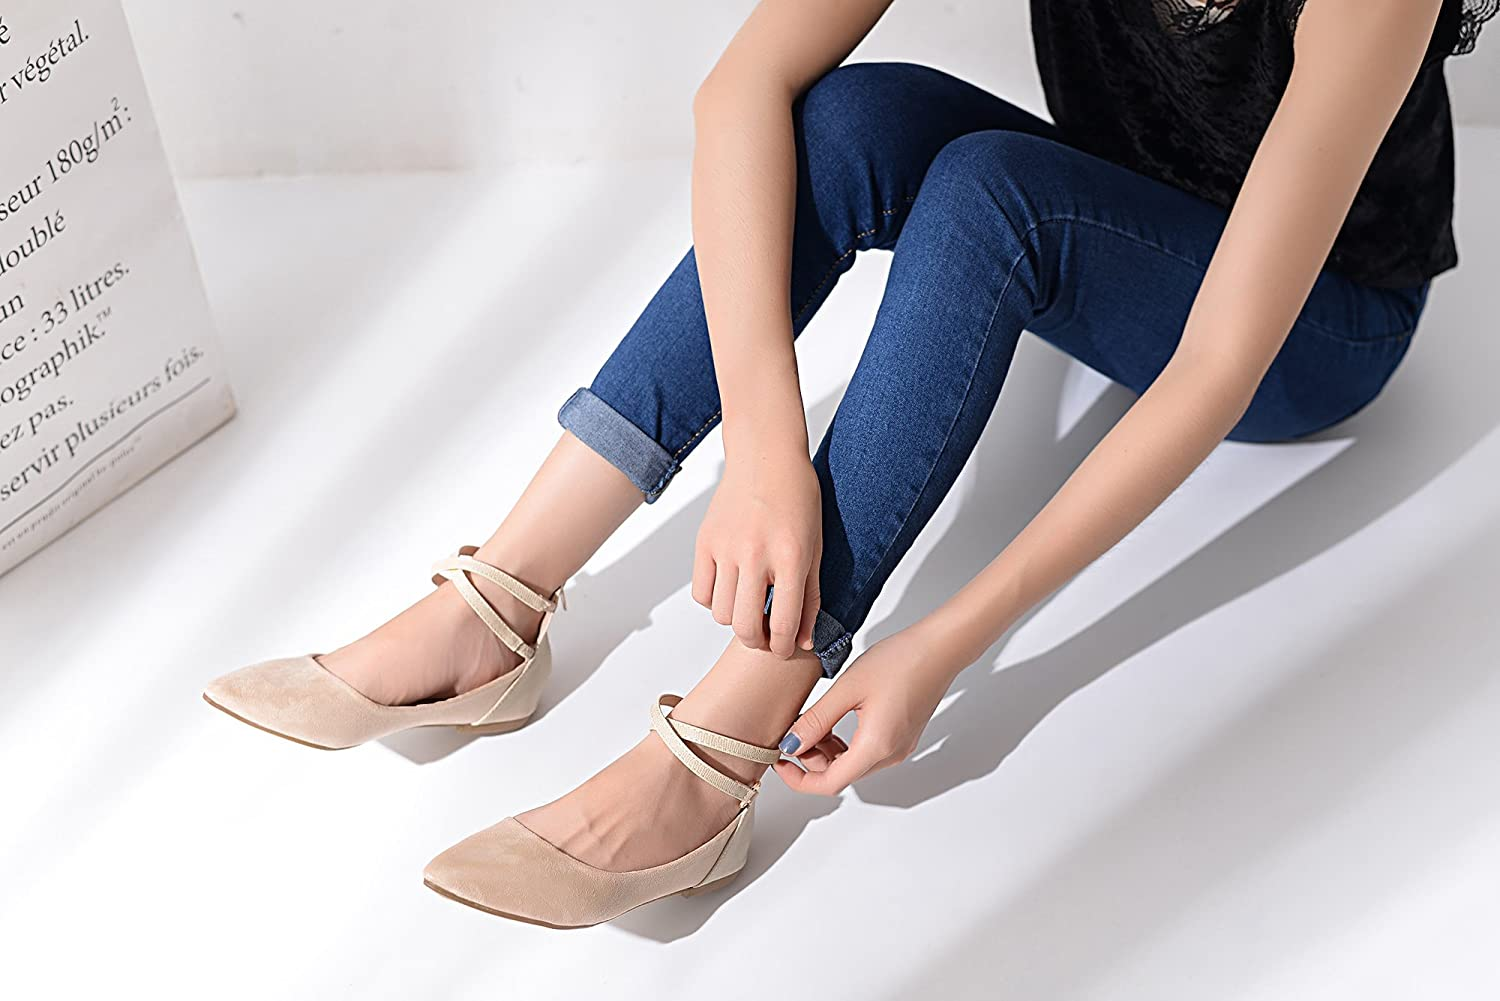 Mila Lady Fashion Lace up Ankle Straps Pointed Toe Ballet Flat Shoes with Comfortable Padded Insole B0731LGGKN 7.5 B(M) US|Nude.2